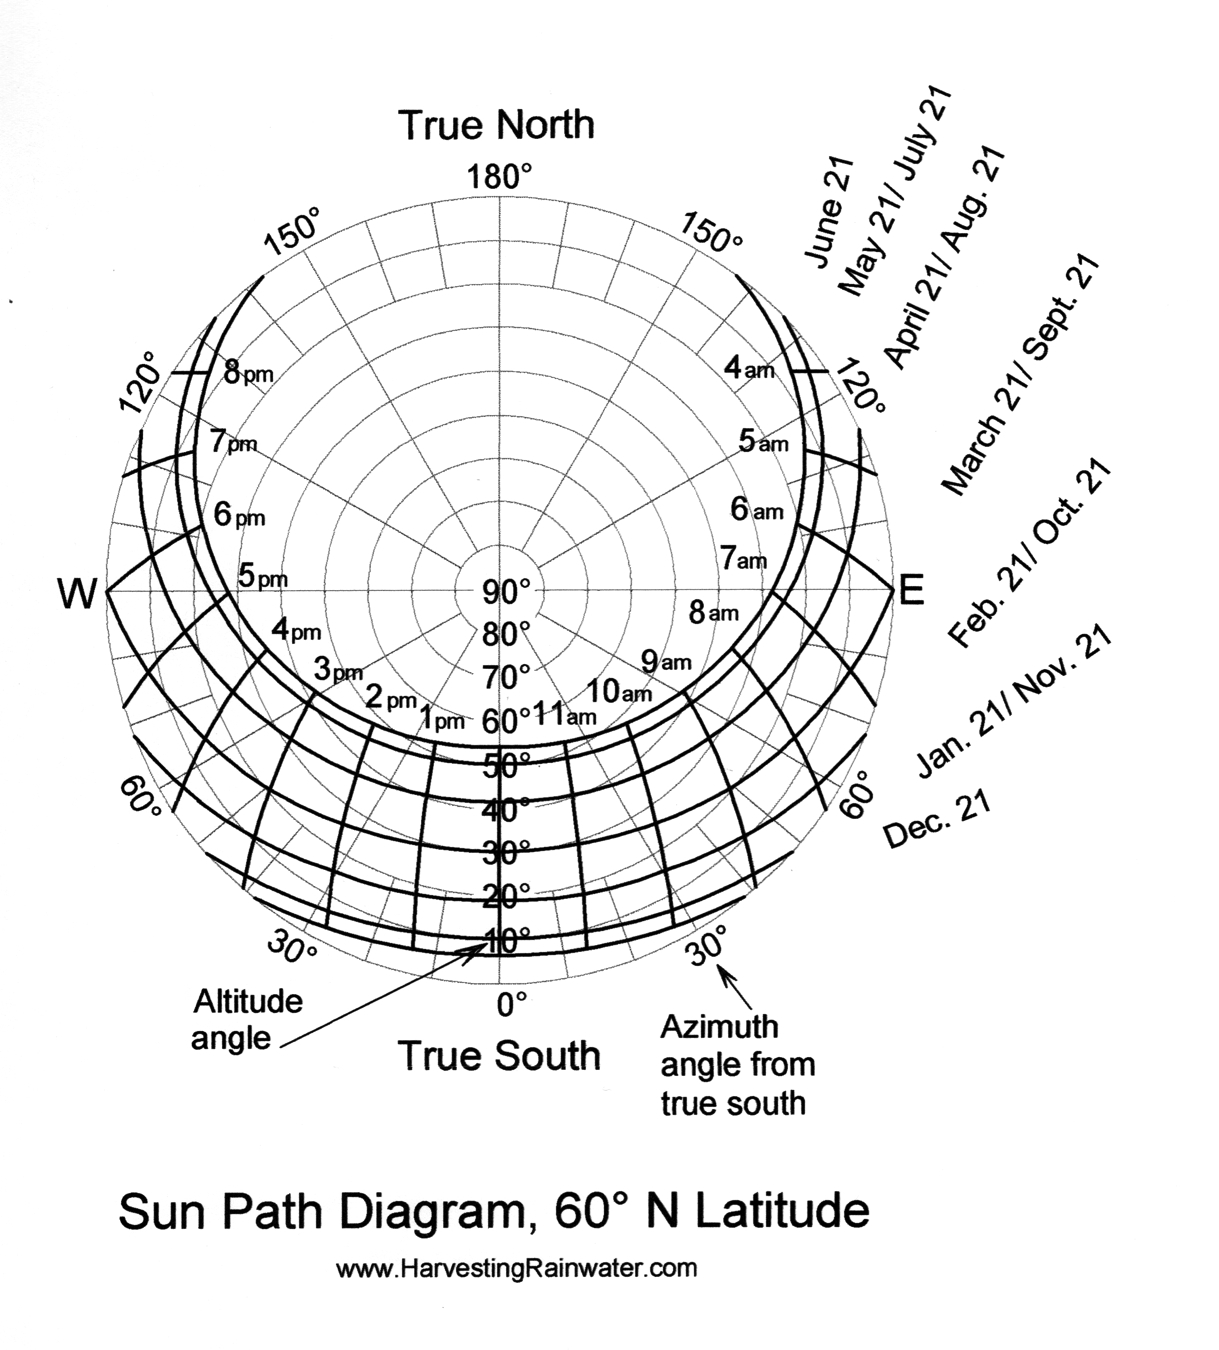 Sun Path Diagram 60o N Latitude